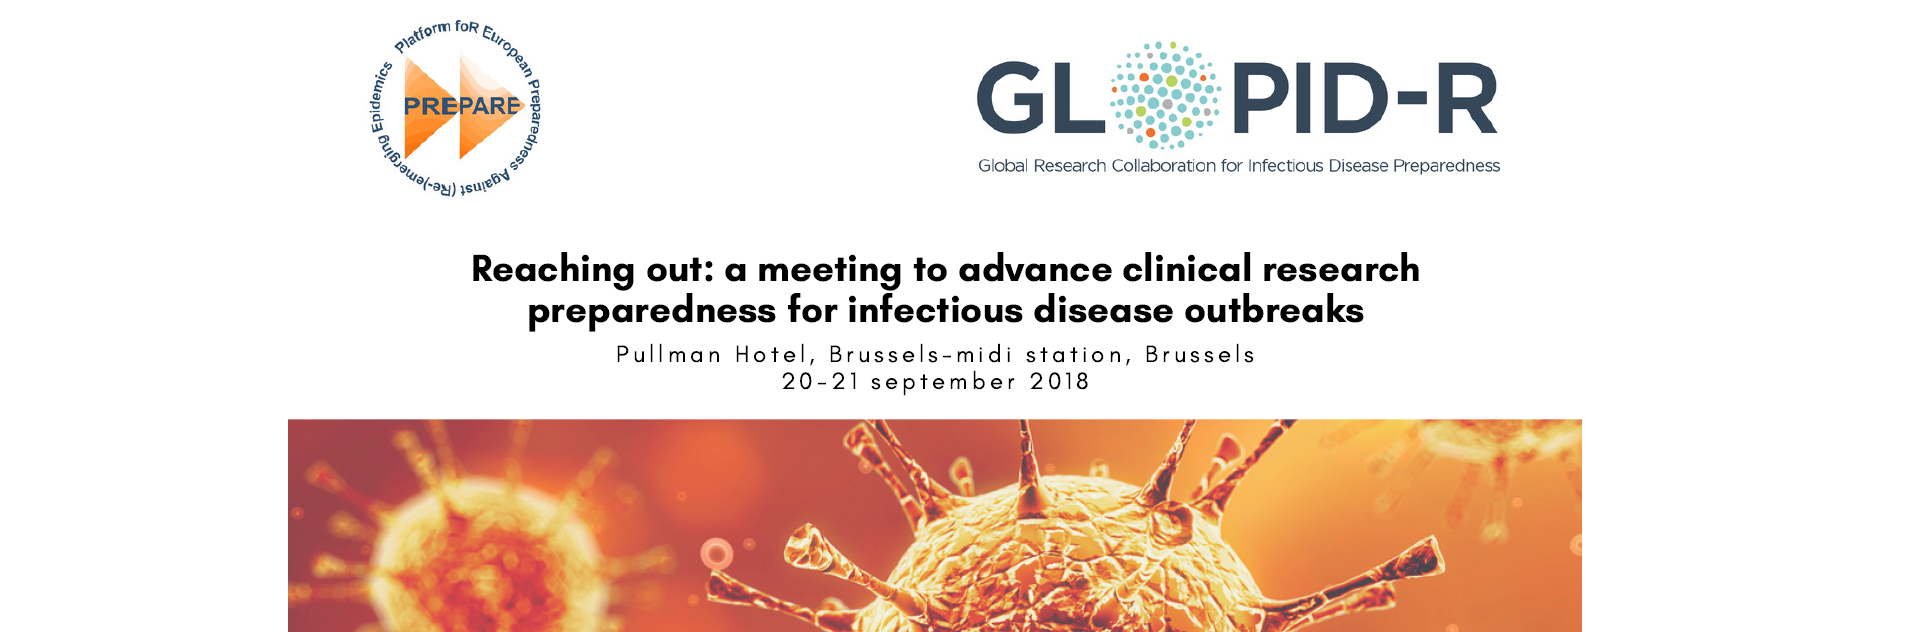 Reaching Out: A Meeting to Advance Clinical Research Preparedness for Infectious Disease Outbreaks